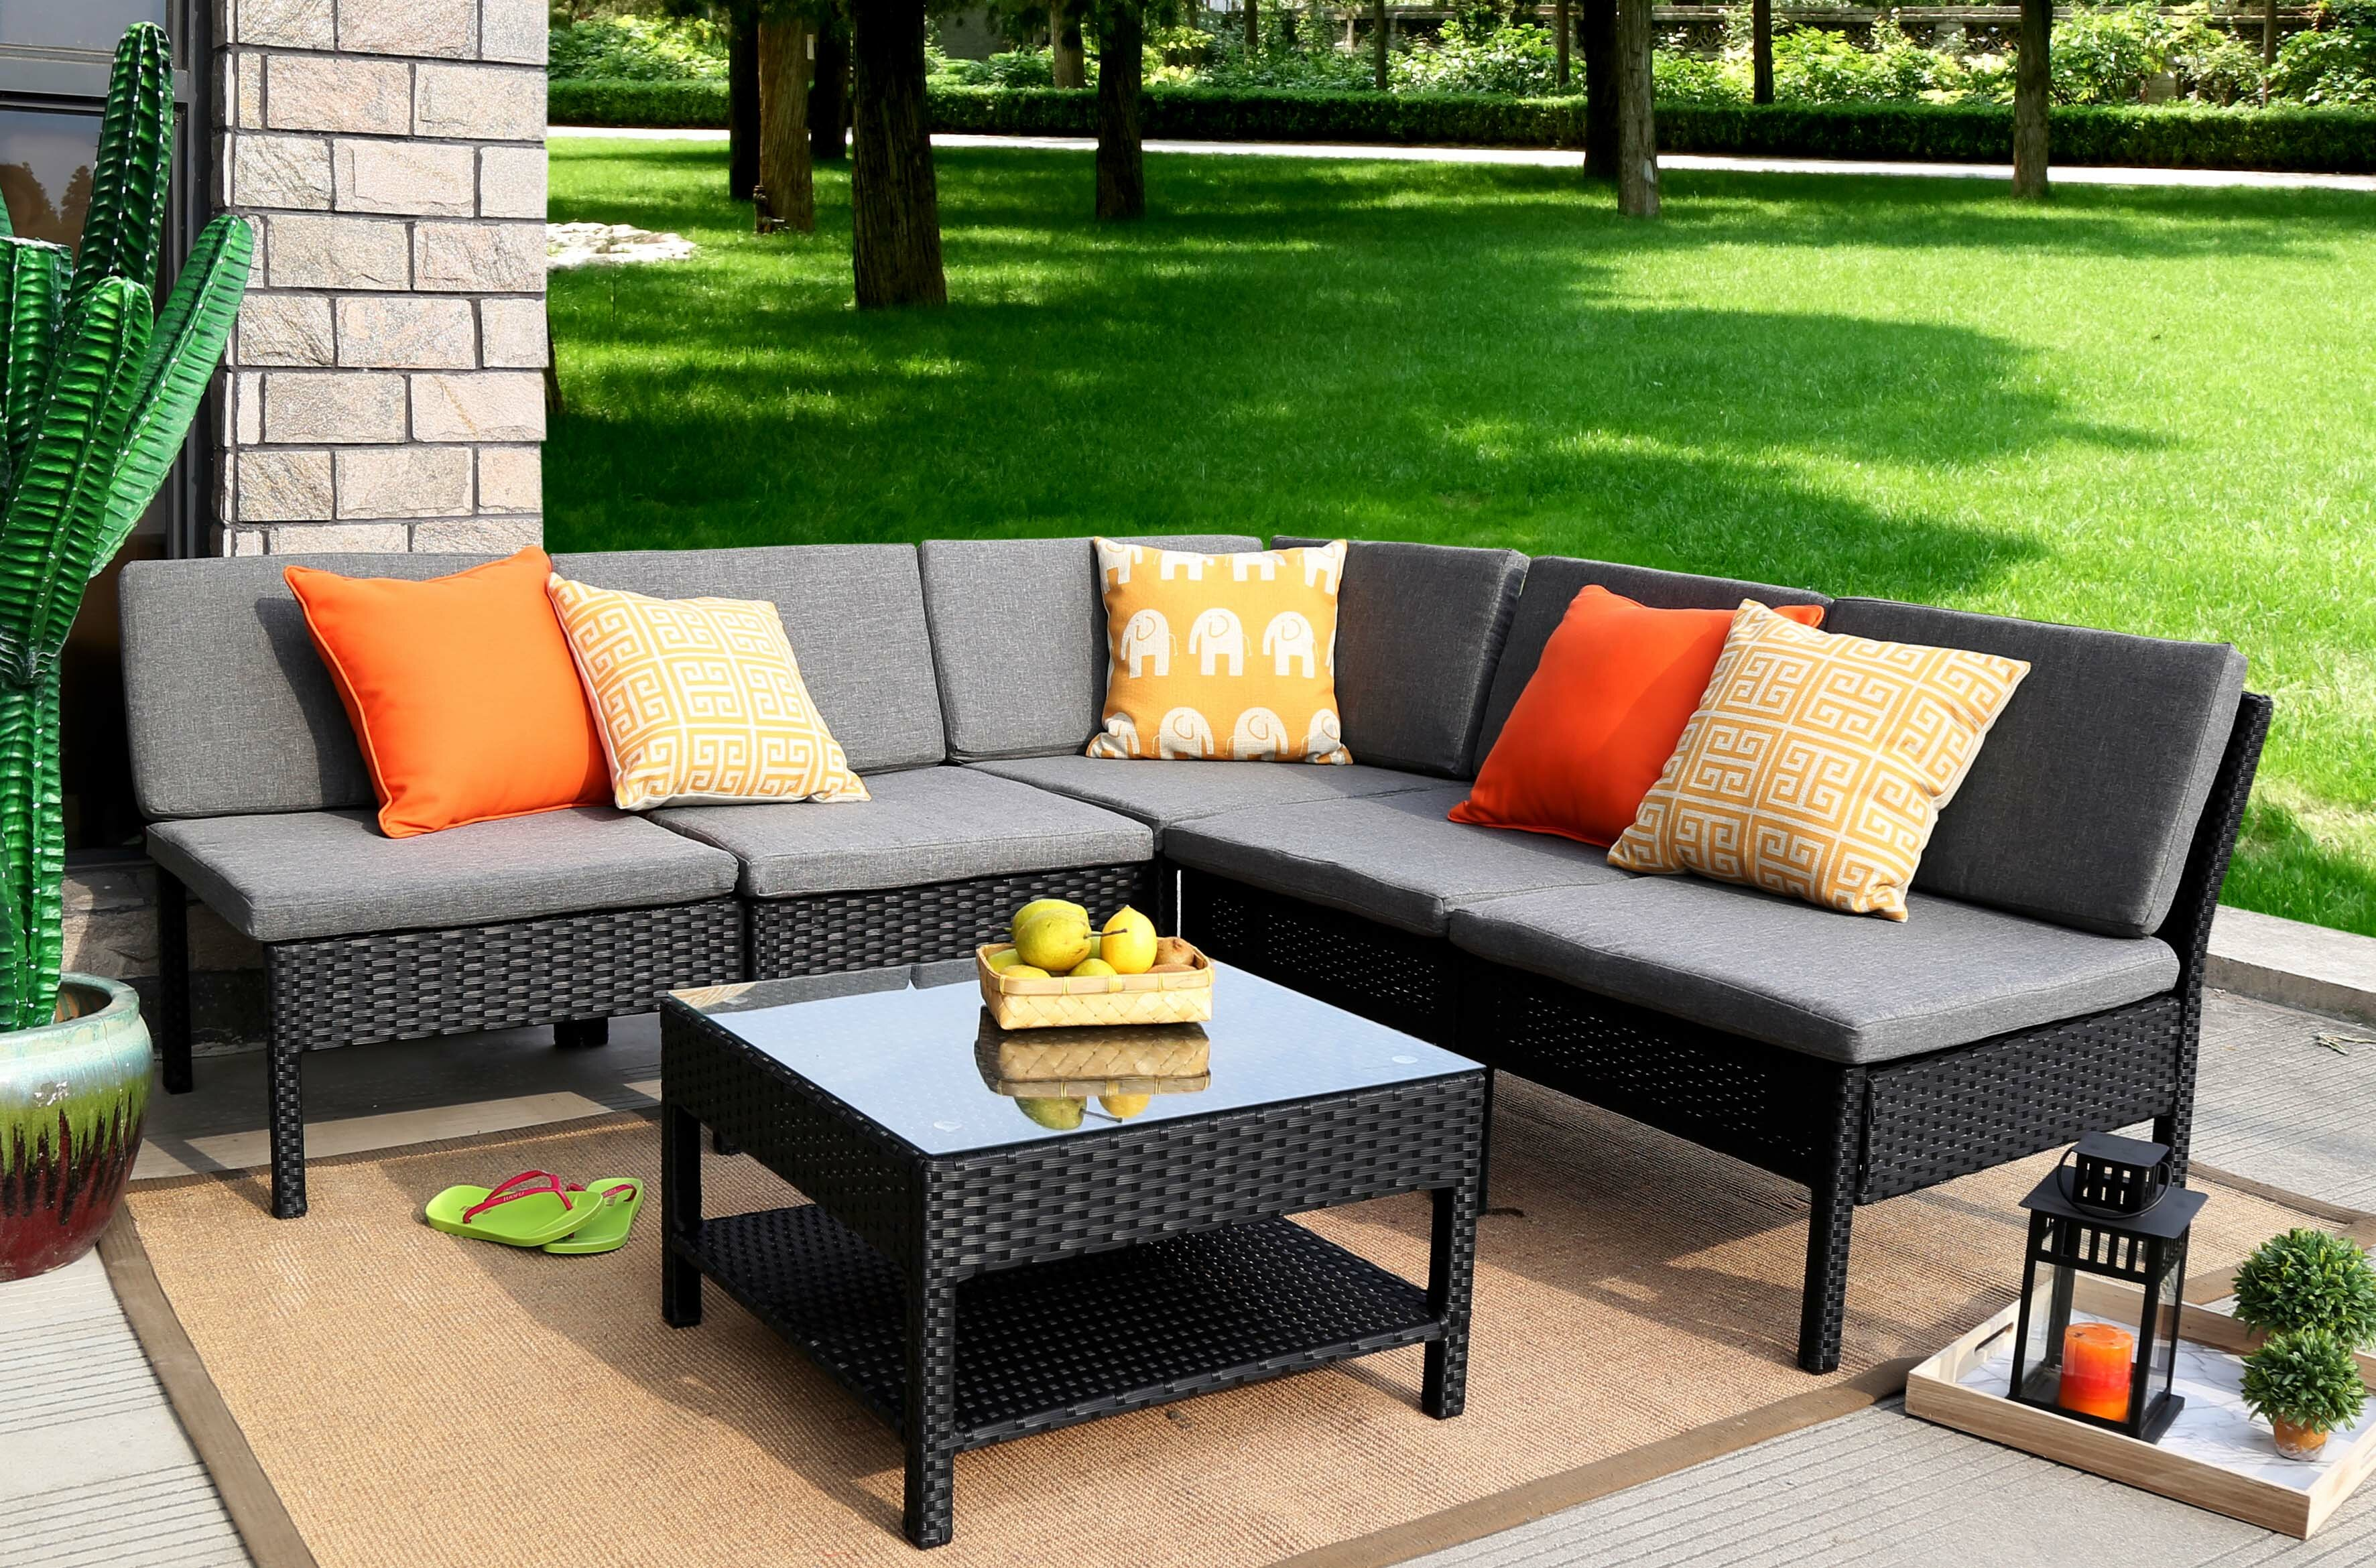 Zipcode Design Maryann plete Patio Garden 6 Piece Sectional Set